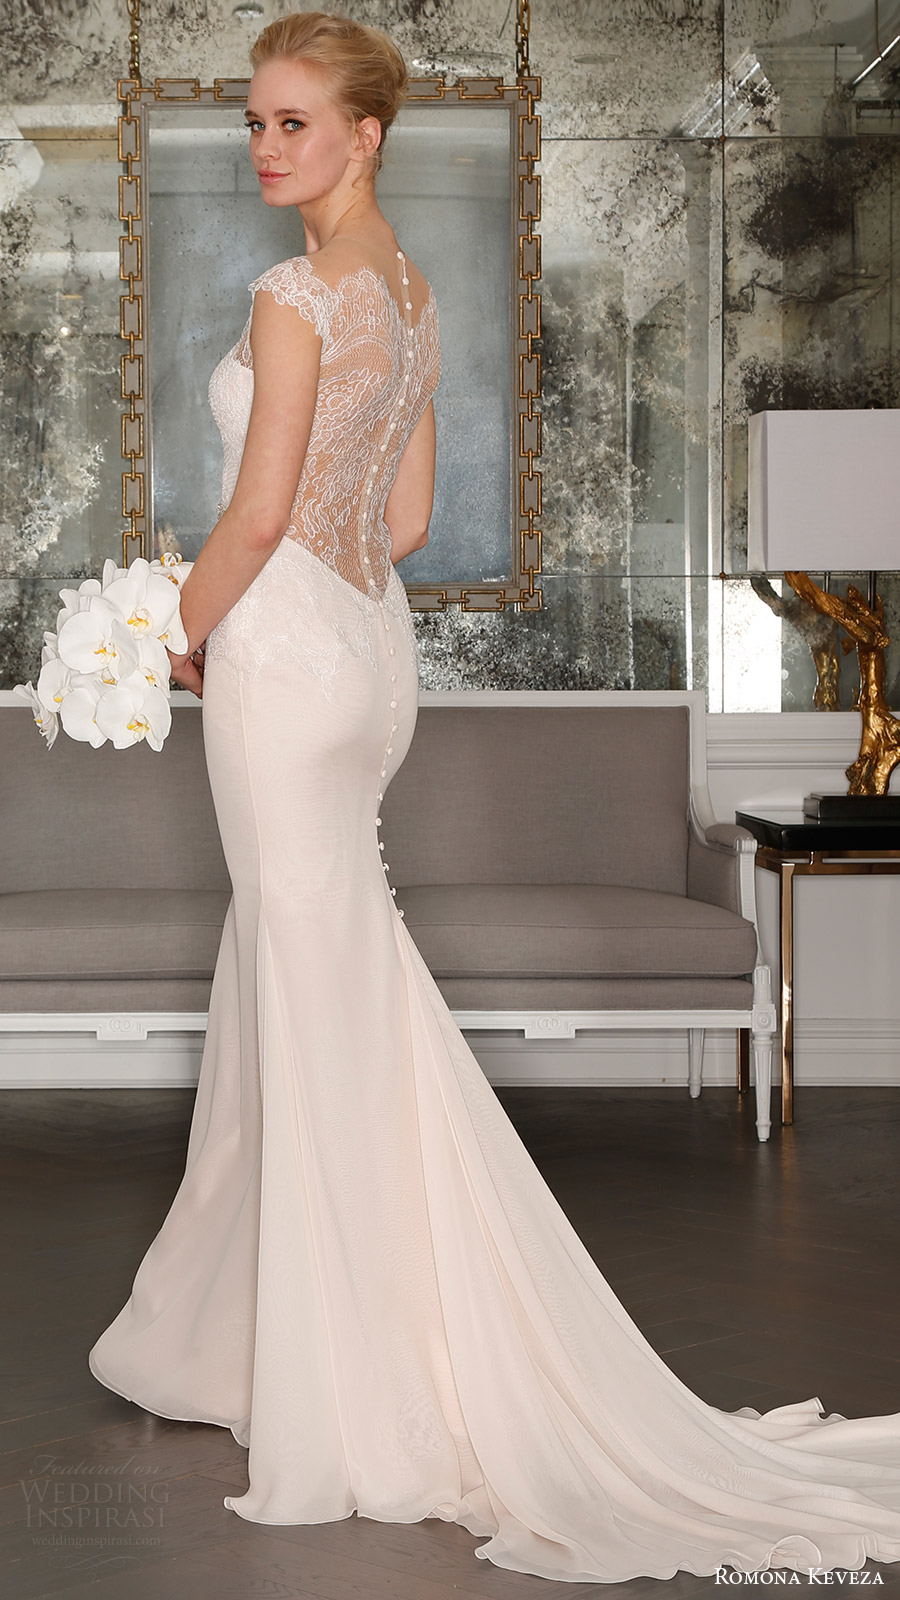 romona keveza bridal spring 2017 illusion cap sleeves sweetheart deep vneck sheath wedding dress (rk7405nt) bv sheer back train